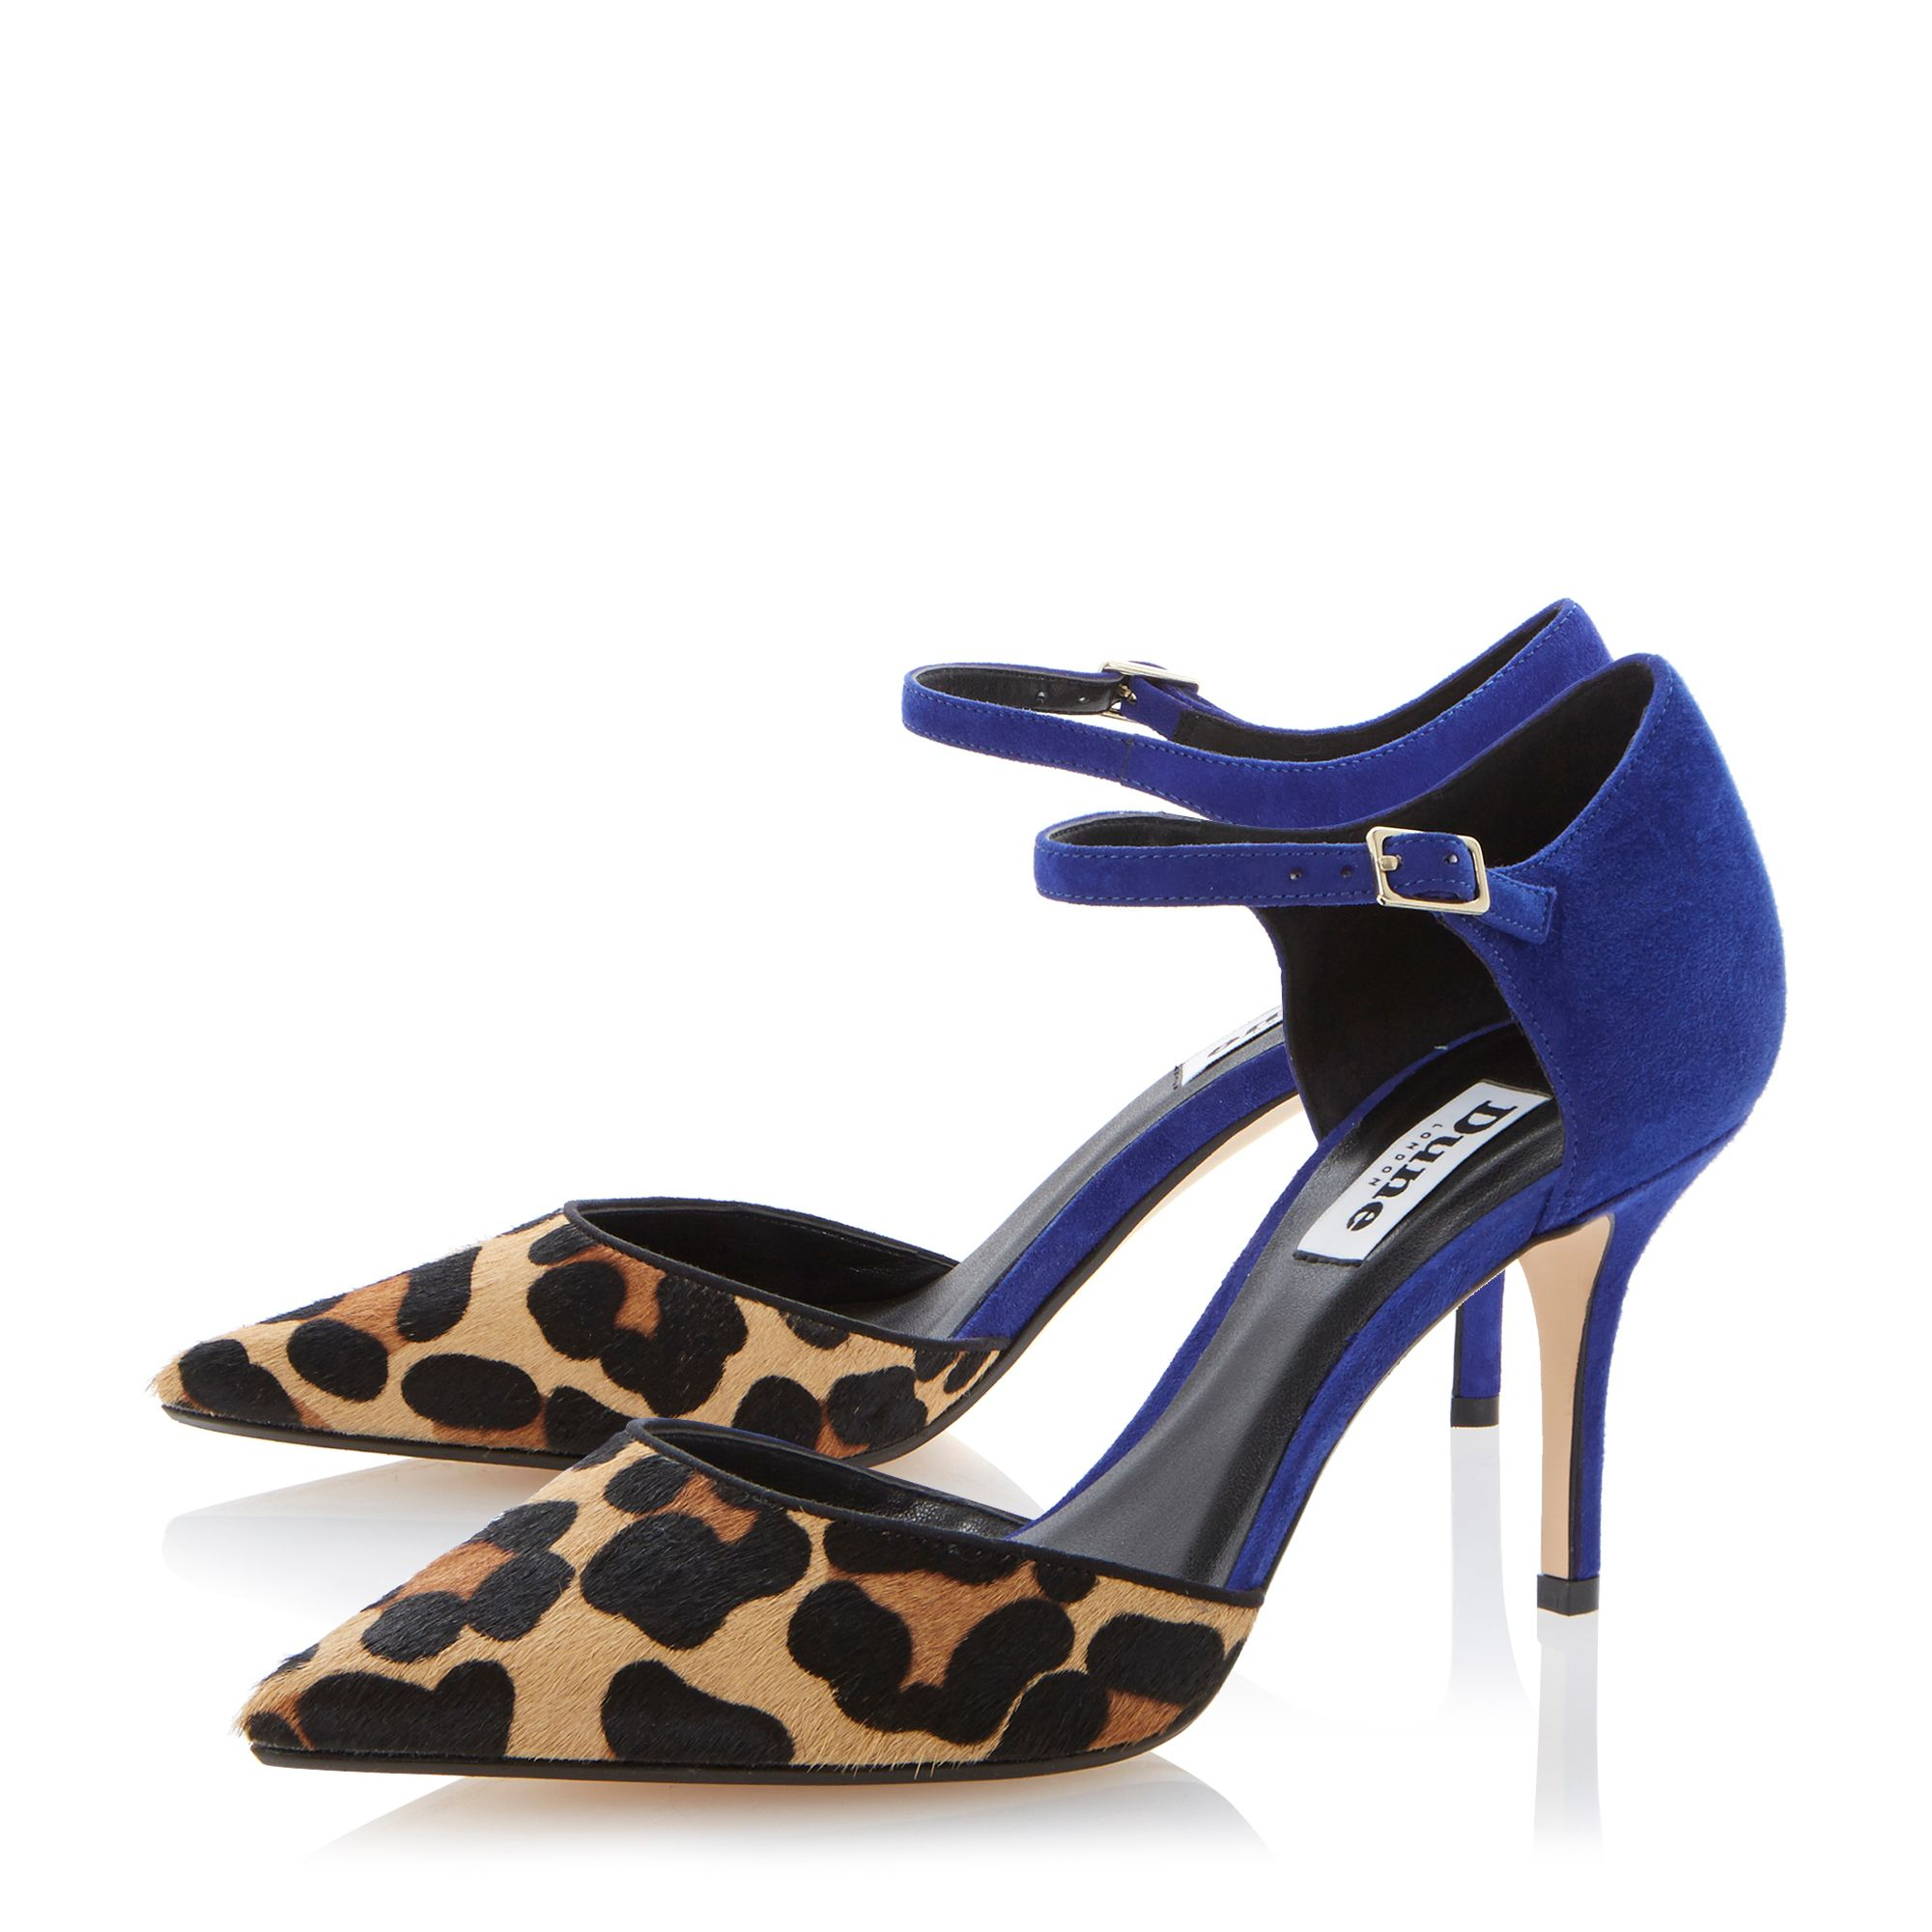 dune-animal-claudia-two-part-high-court-shoes-product-1-21861717-1-096655186-normal